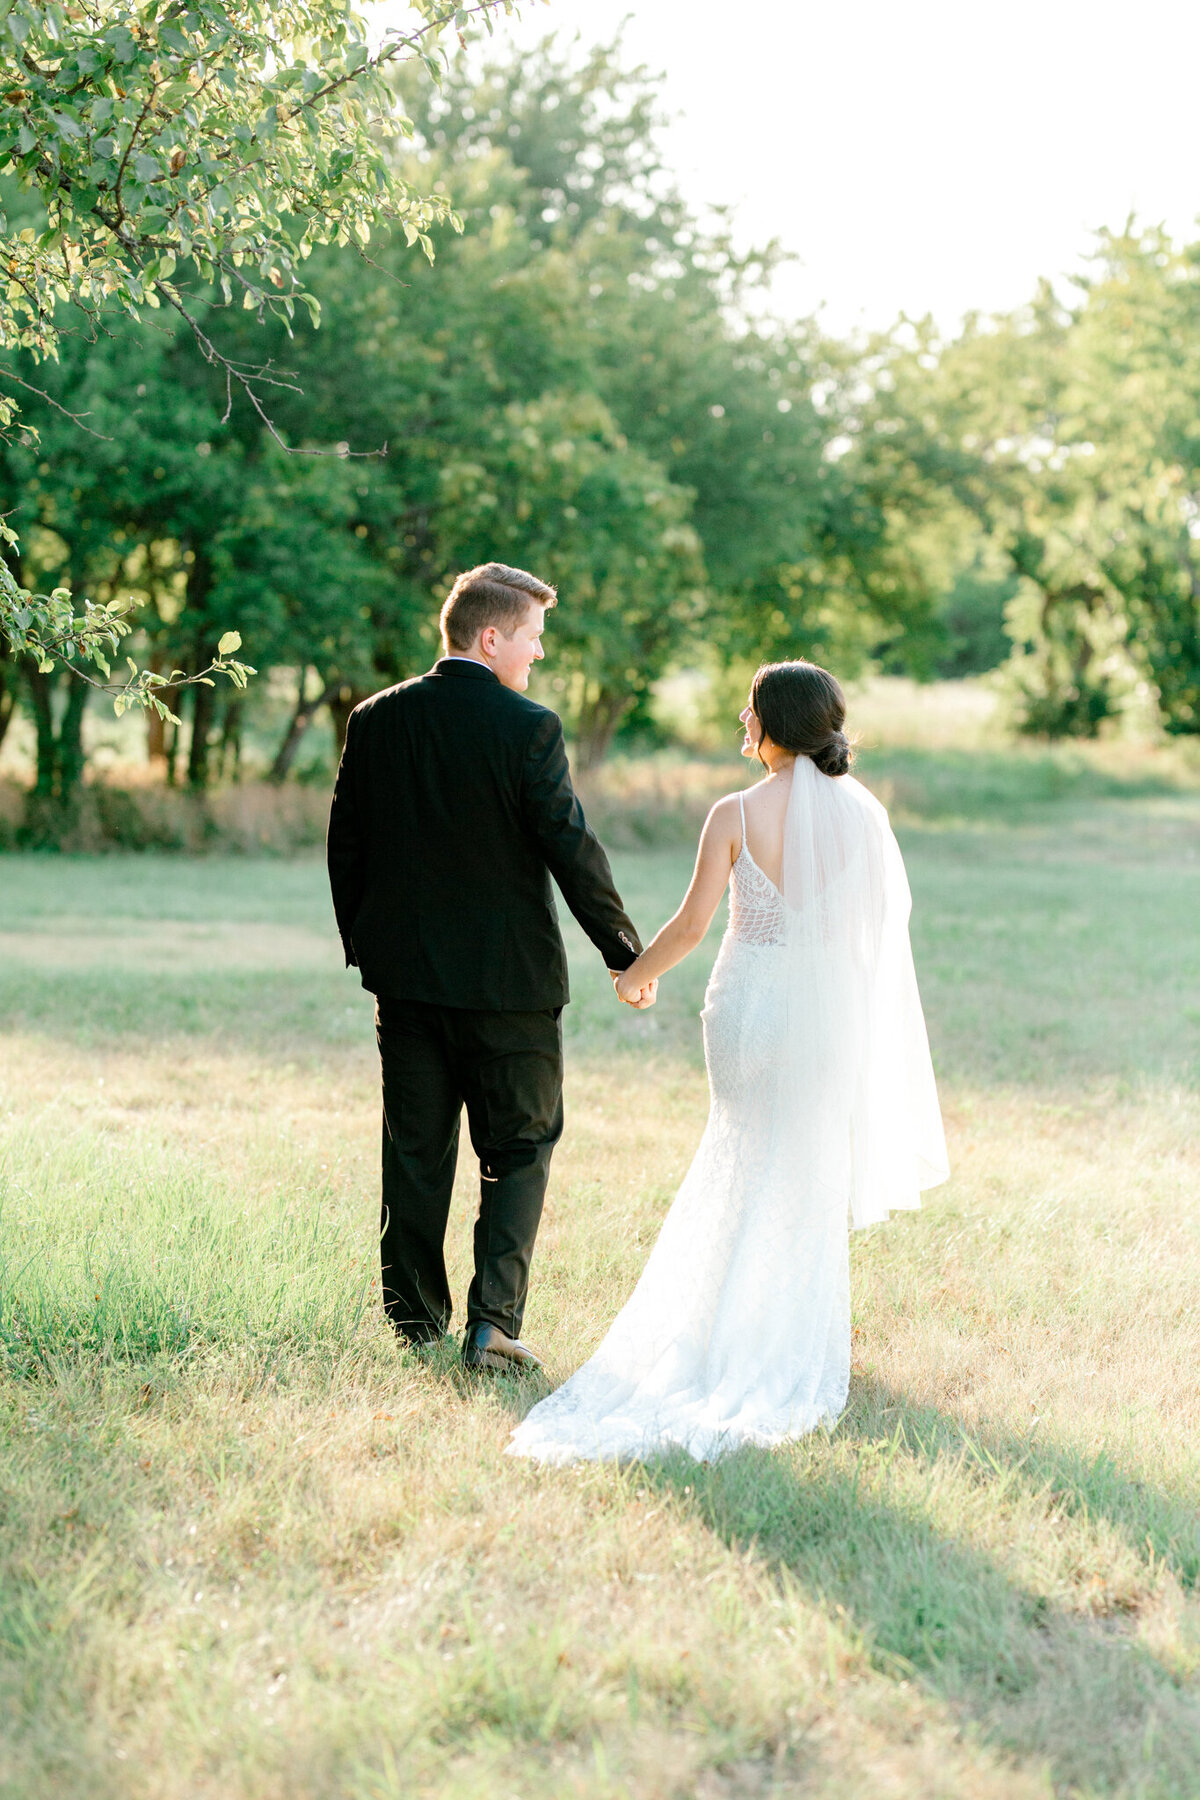 Anna & Billy's Wedding at The Nest at Ruth Farms | Dallas Wedding Photographer | Sami Kathryn Photography-13